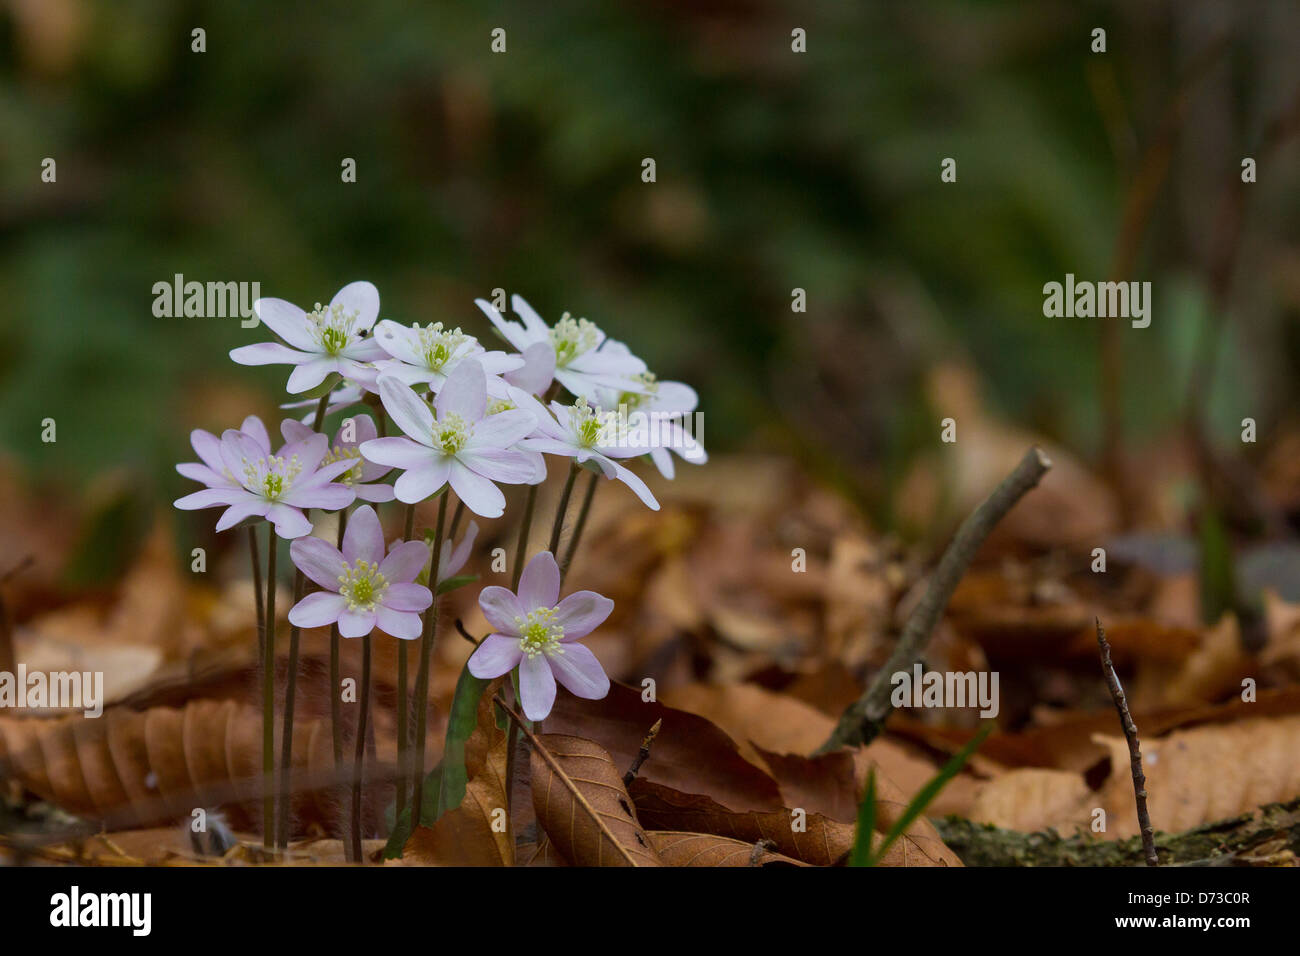 A Clump Of Hepatica Flowers In Bloom During The Spring Season Stock